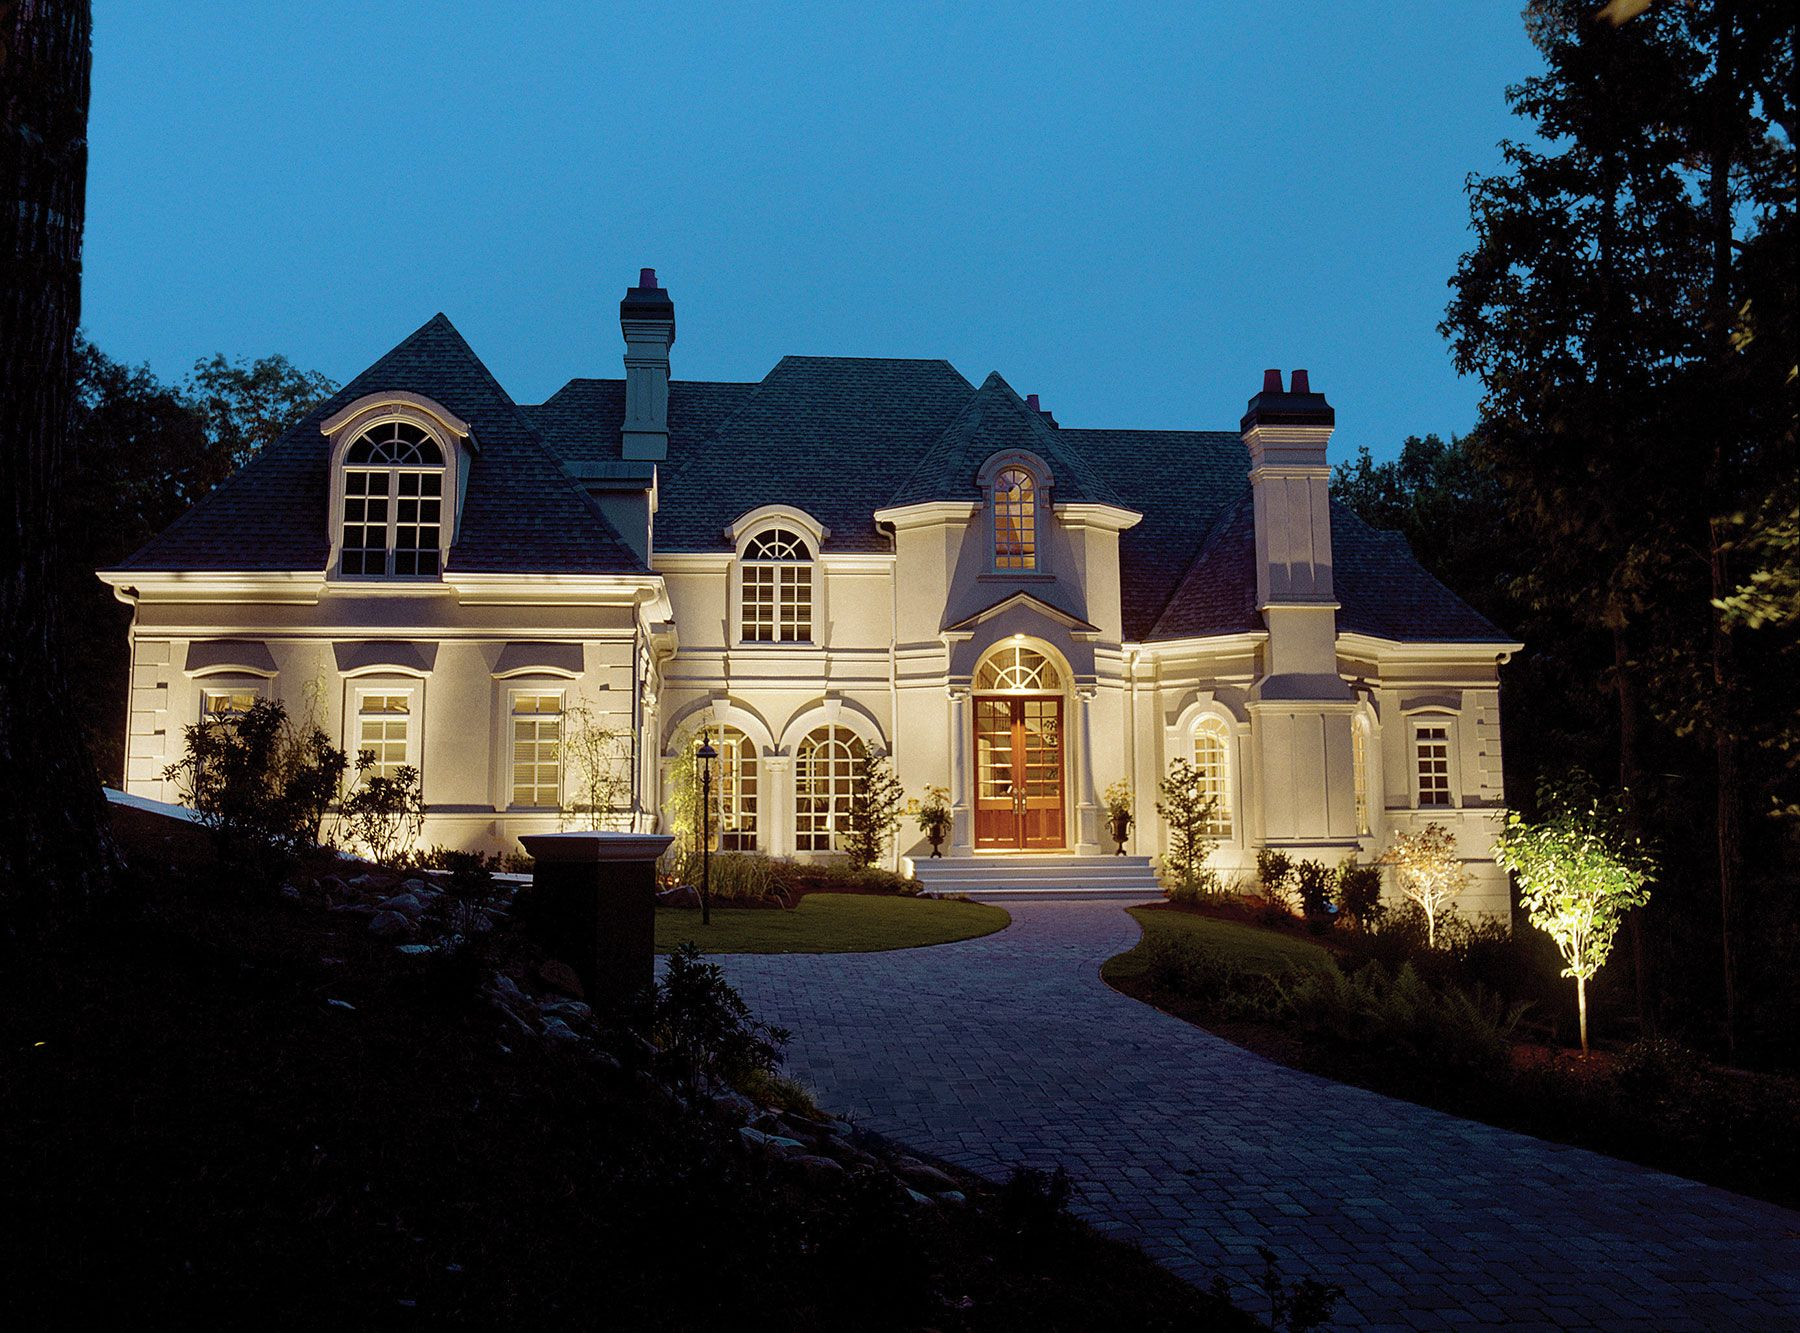 Custom designed for this stately Georgia home the Outdoor Lighting